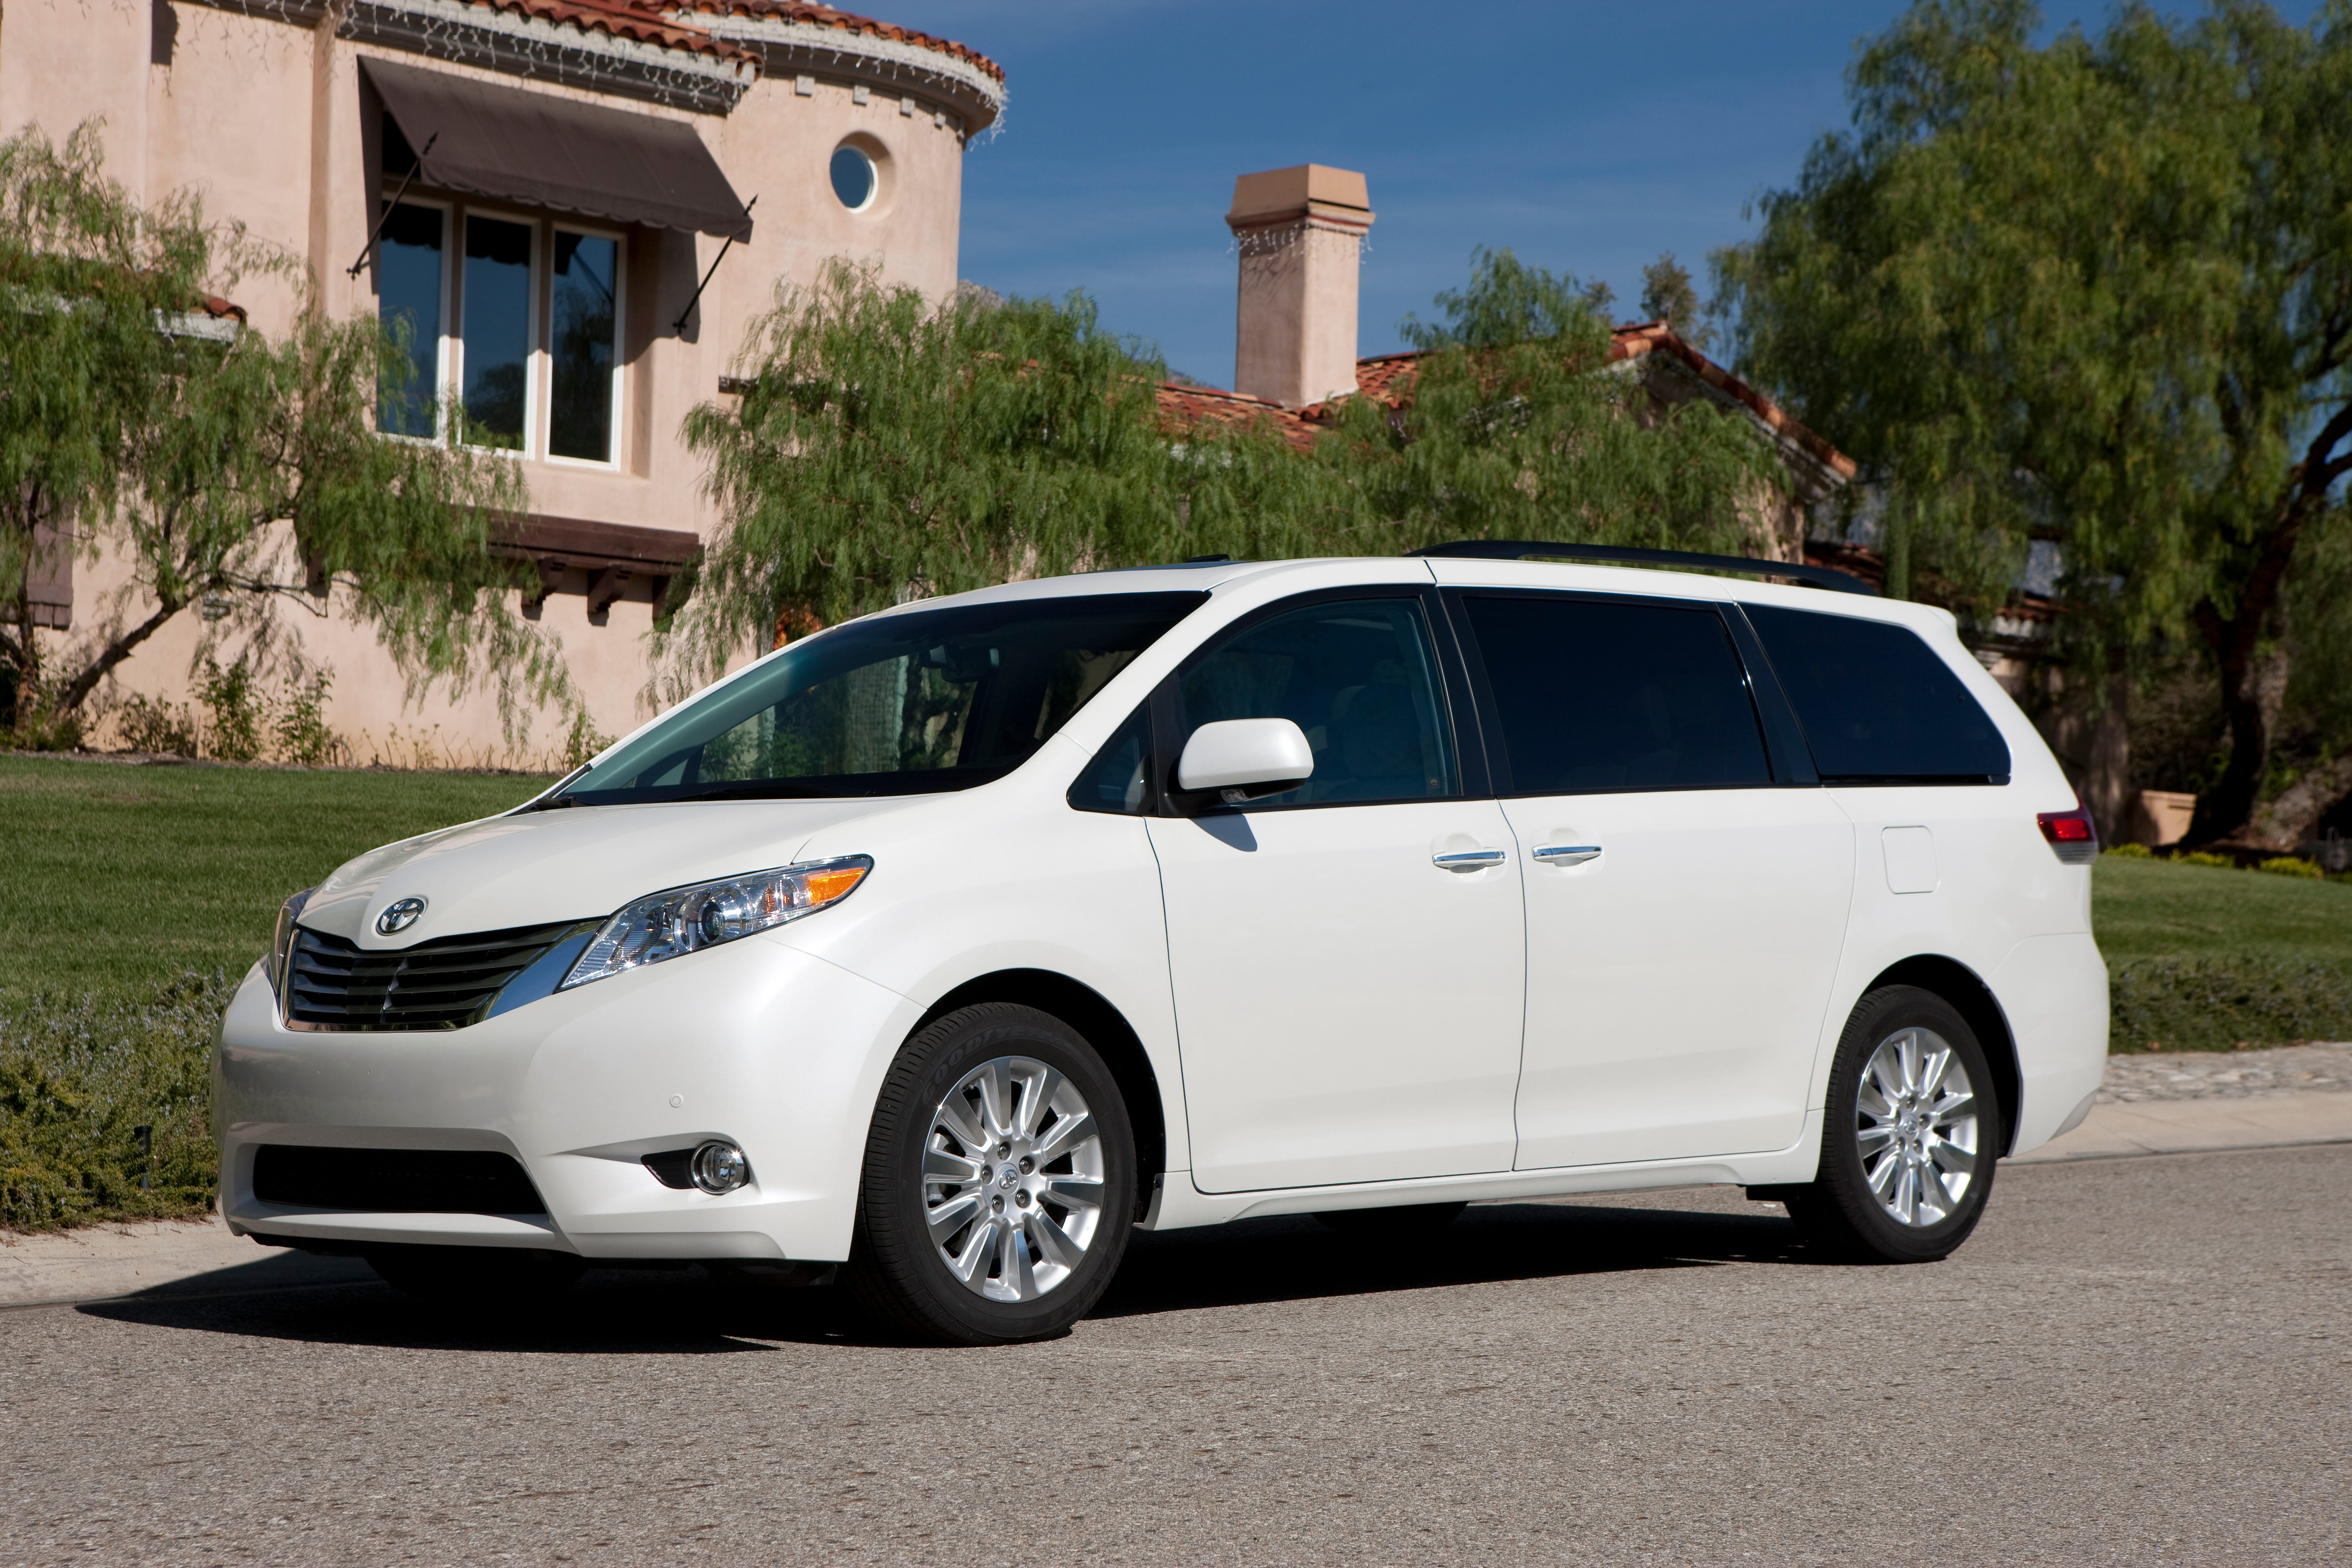 Toyota Sienna Service Manual: Reassembly